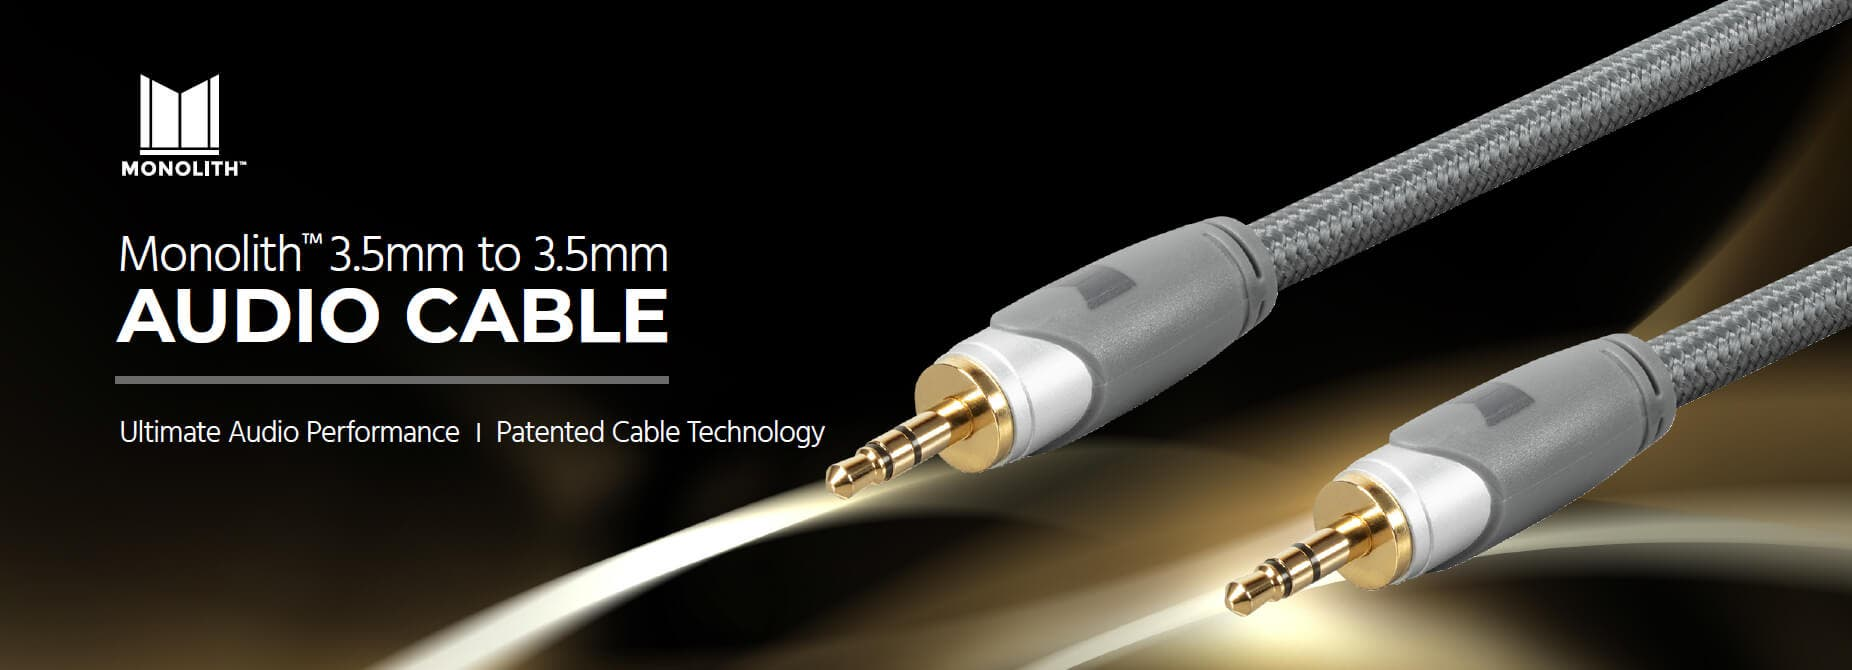 Monolith 3.5mm to 3.5 mm Audio Cable